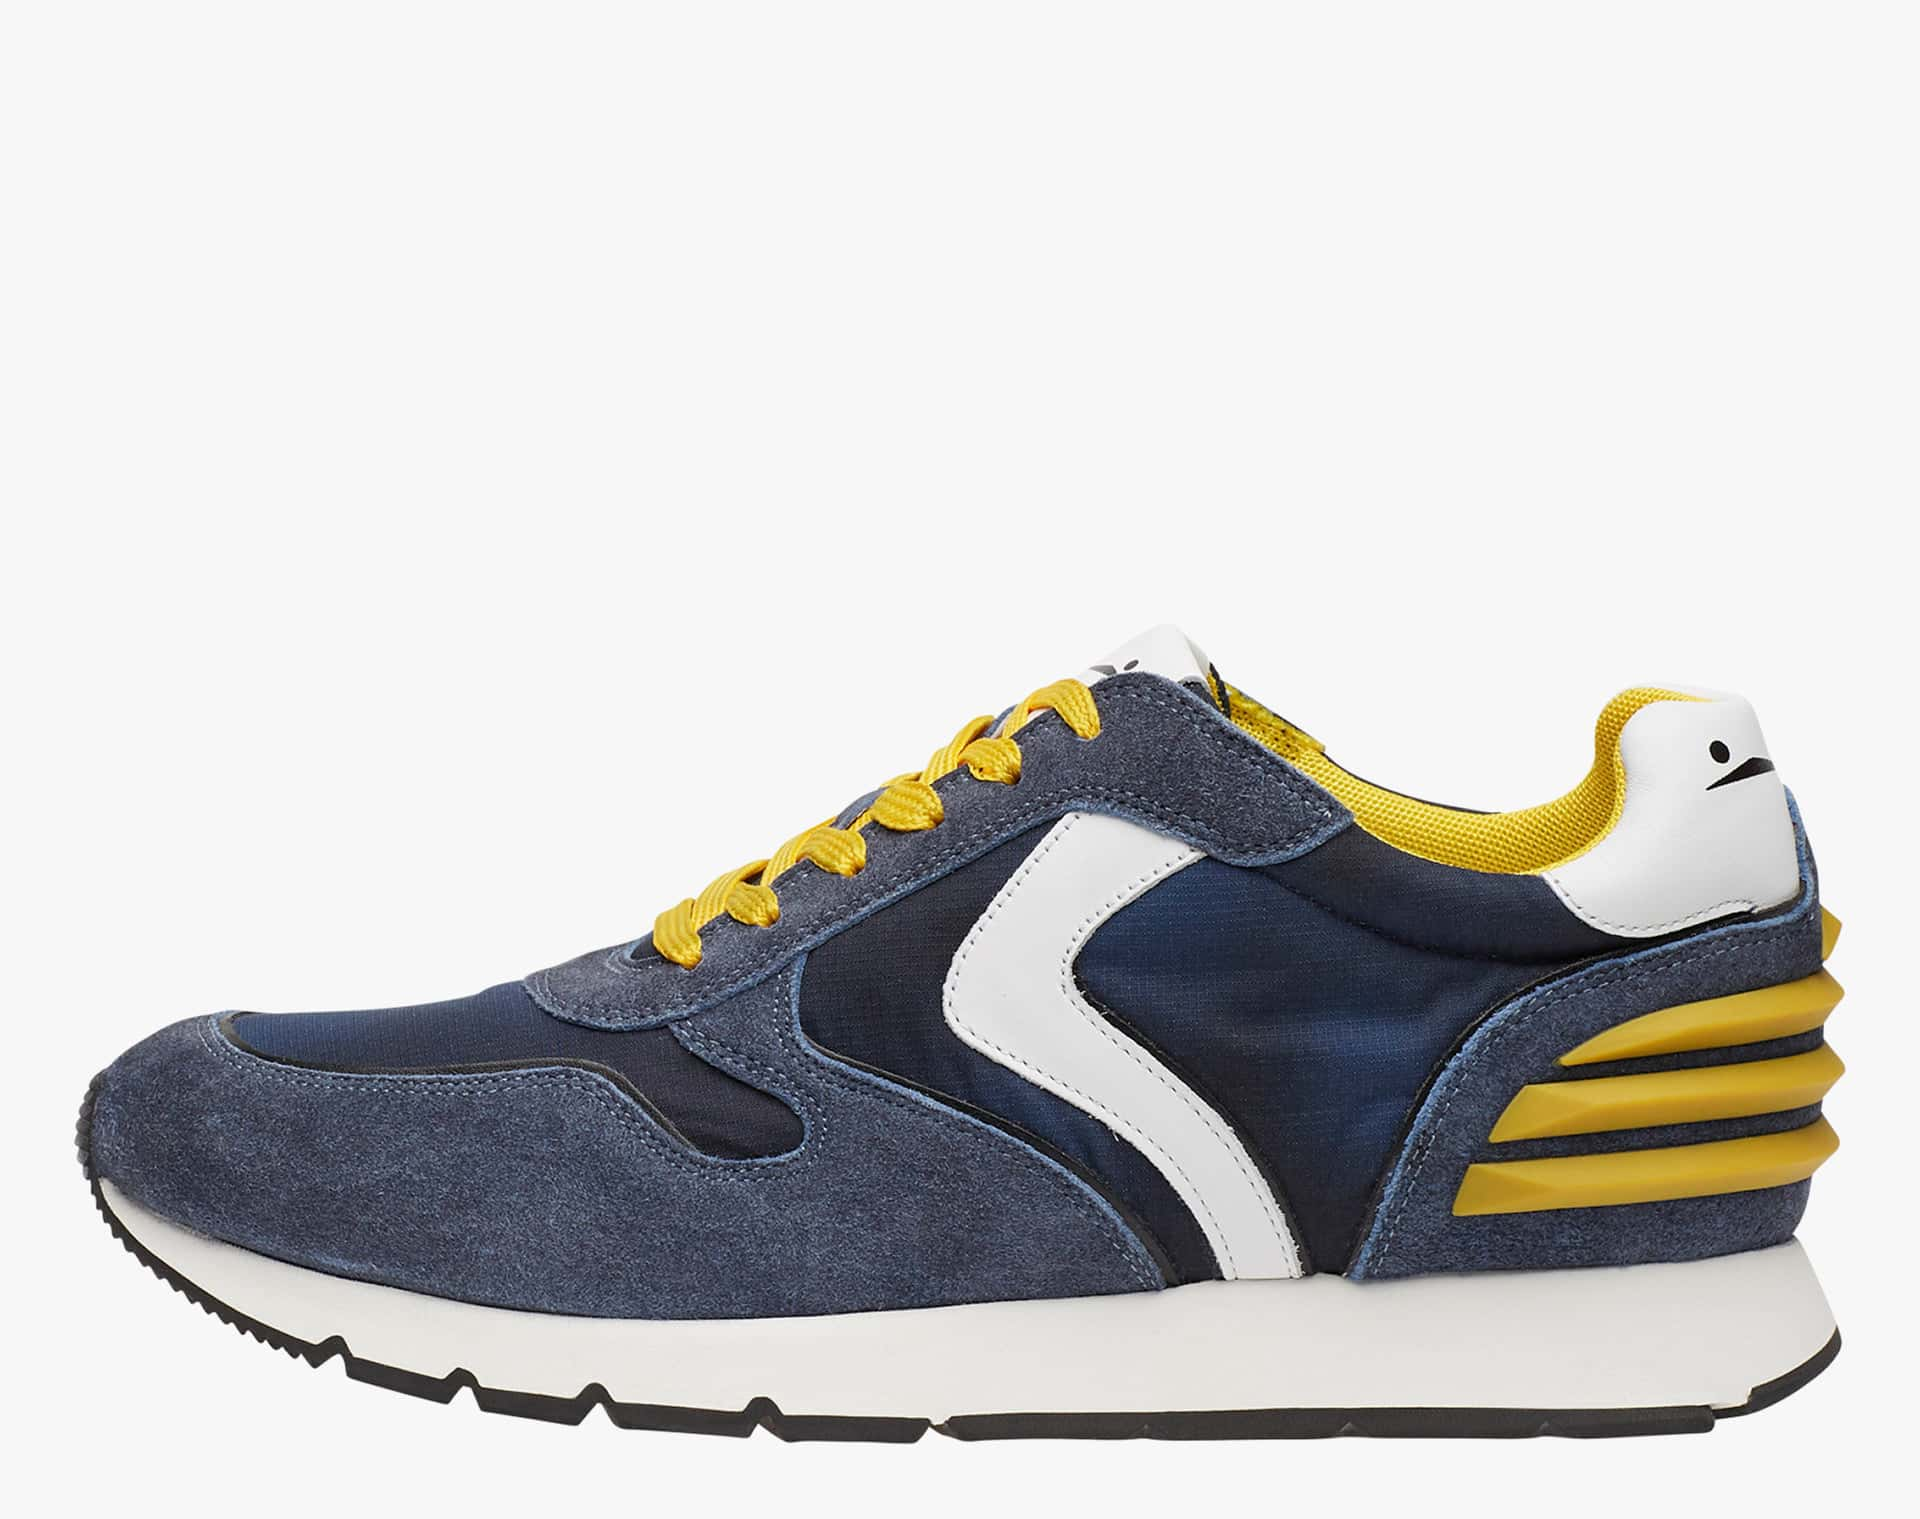 LIAM POWER - Sneakers in pelle - Blu